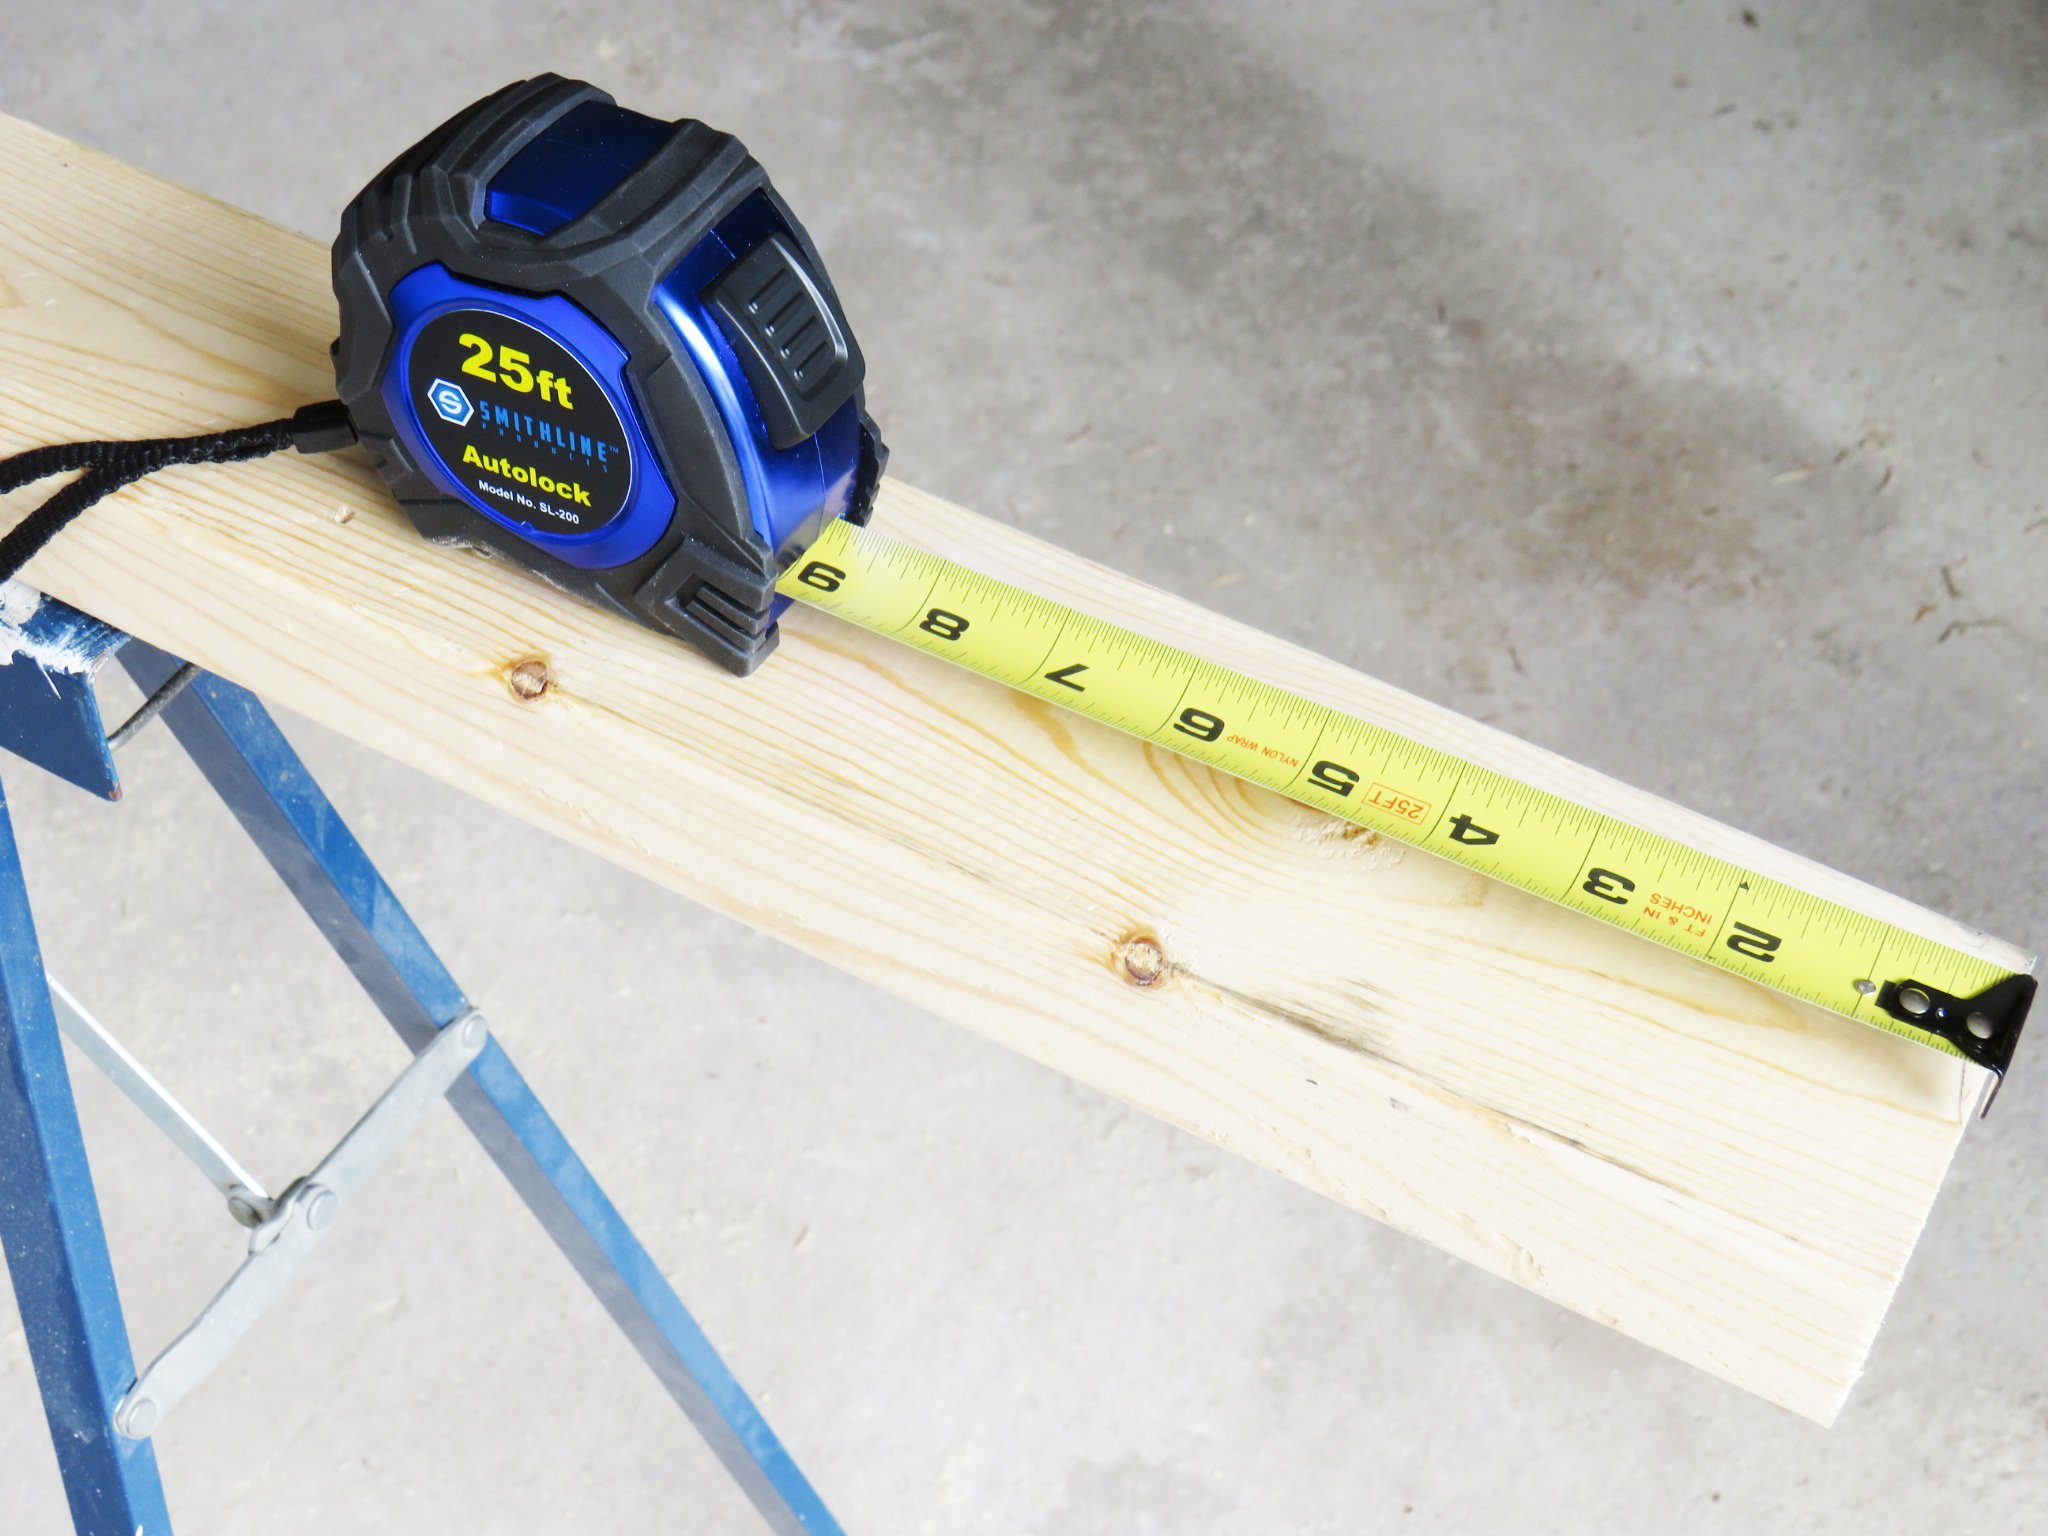 Smithline SL-200 Professional Grade Auto-lock Tape Measure by Smithline Products (Image #3)